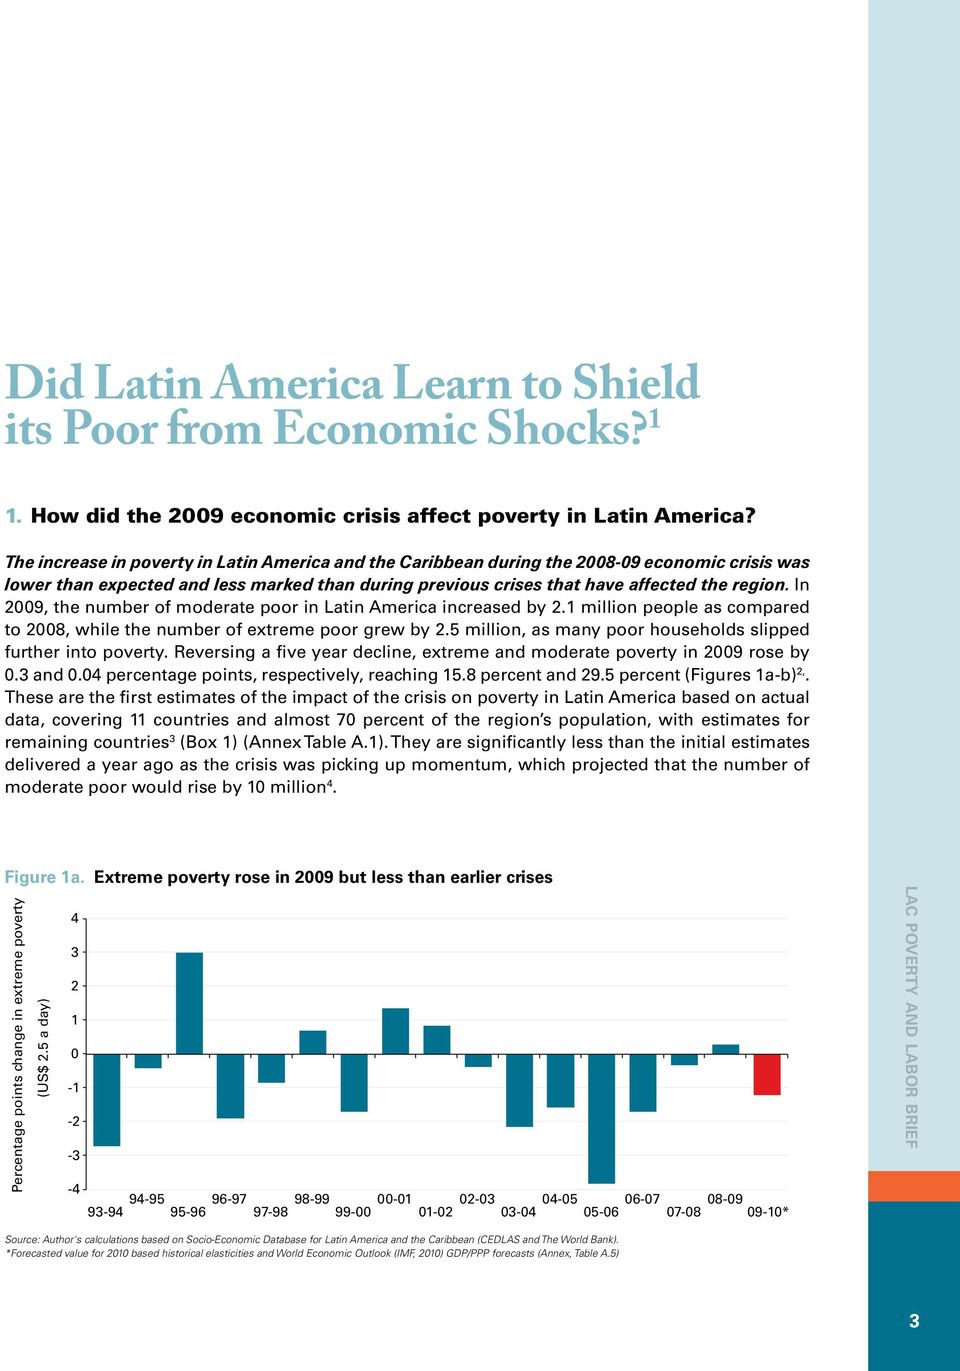 In 2009, the number of moderate poor in Latin America increased by 2.1 million people as compared to 2008, while the number of extreme poor grew by 2.